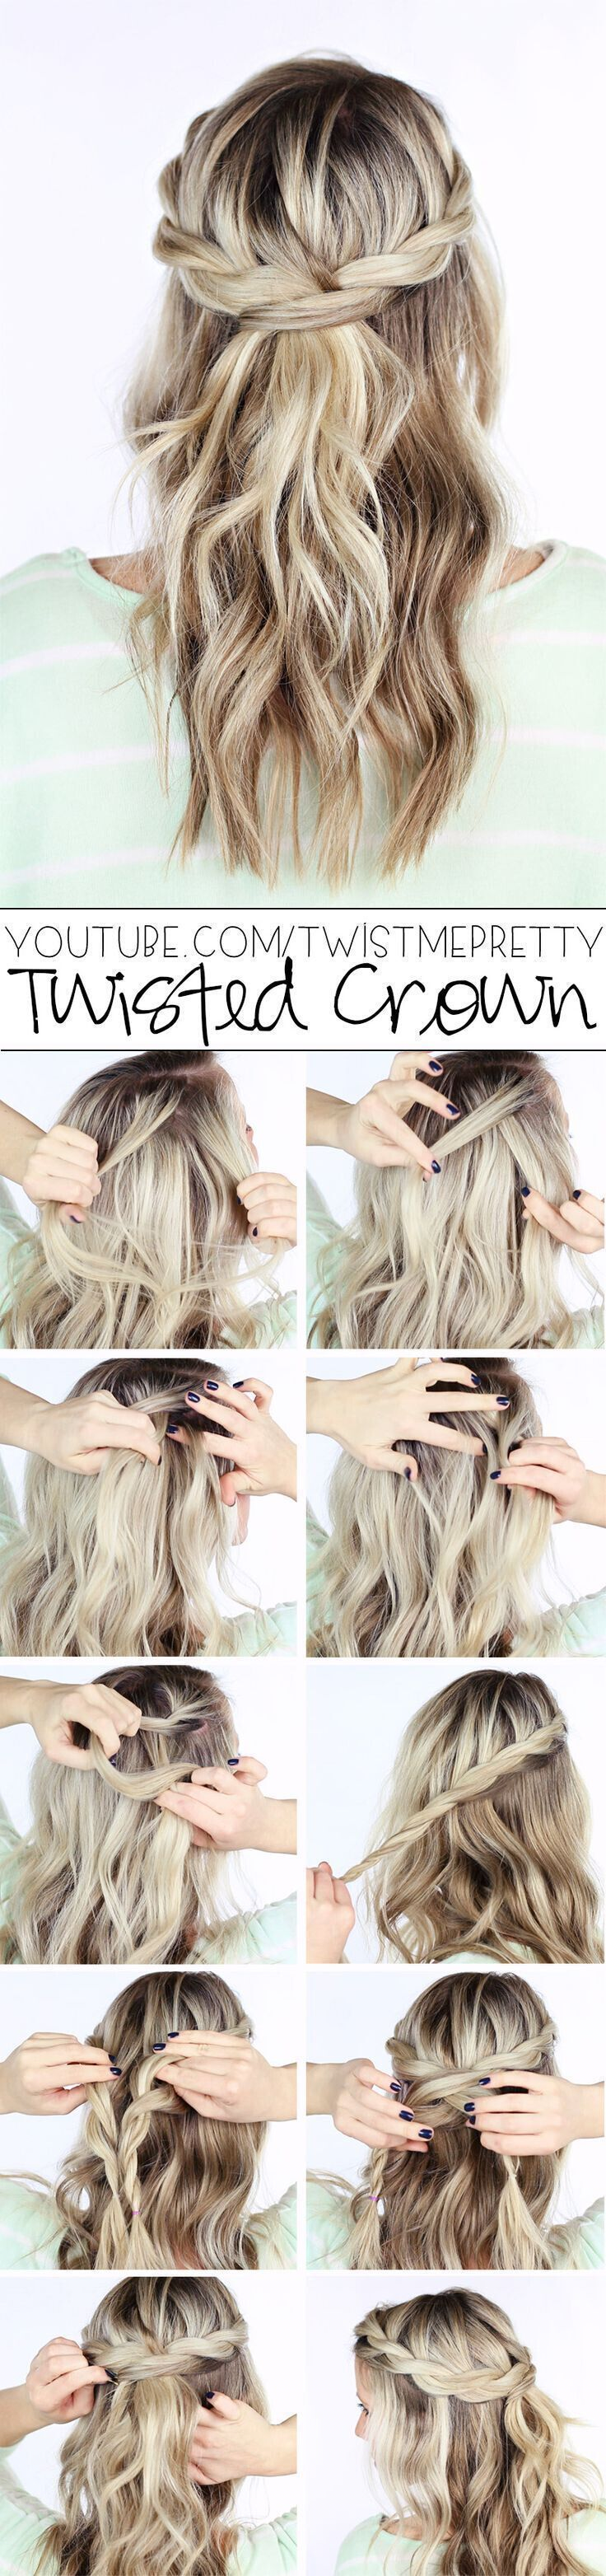 307 best Hairstyles images on Pinterest